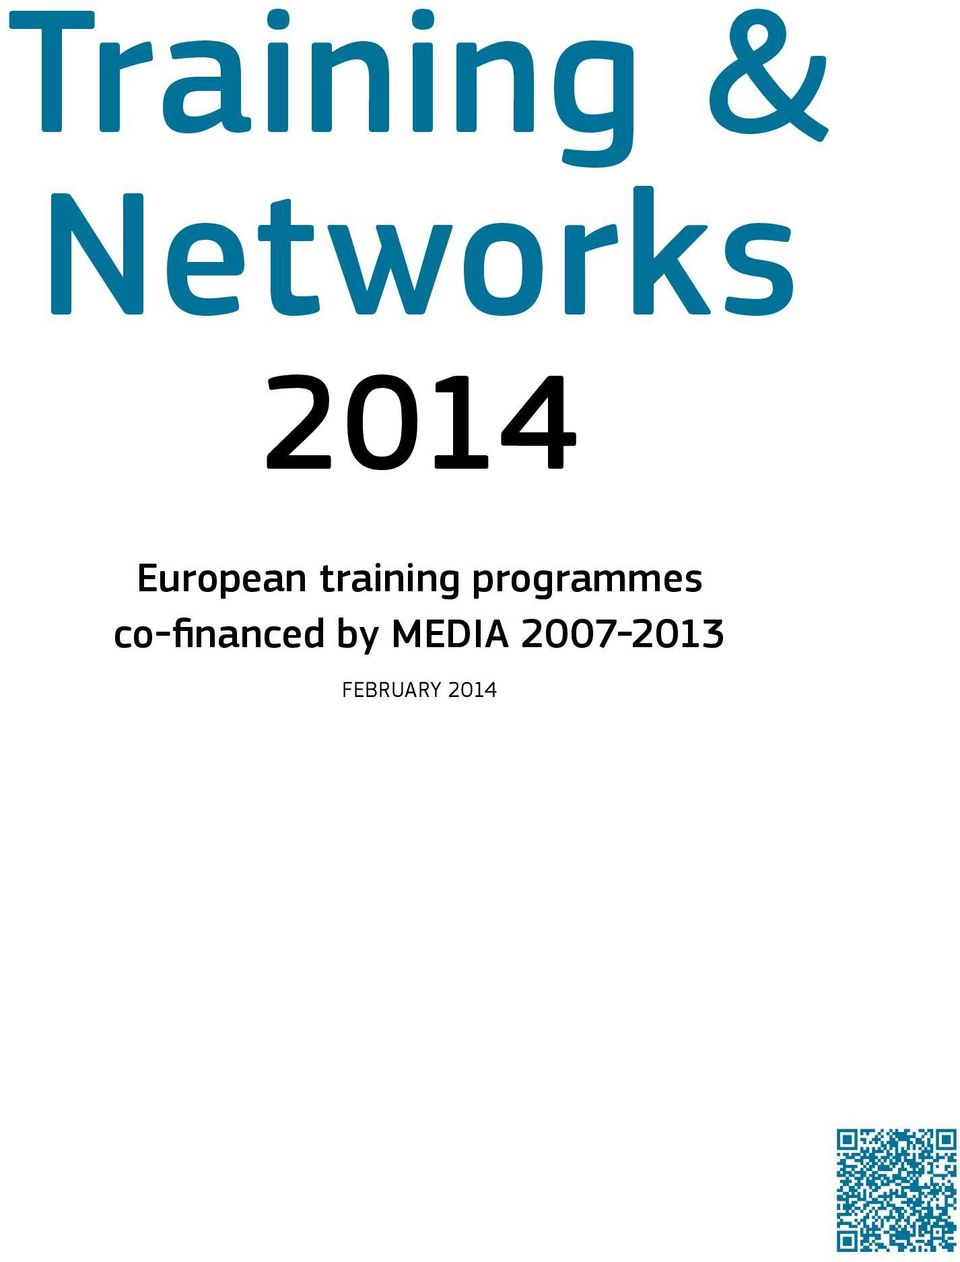 programmes co-financed